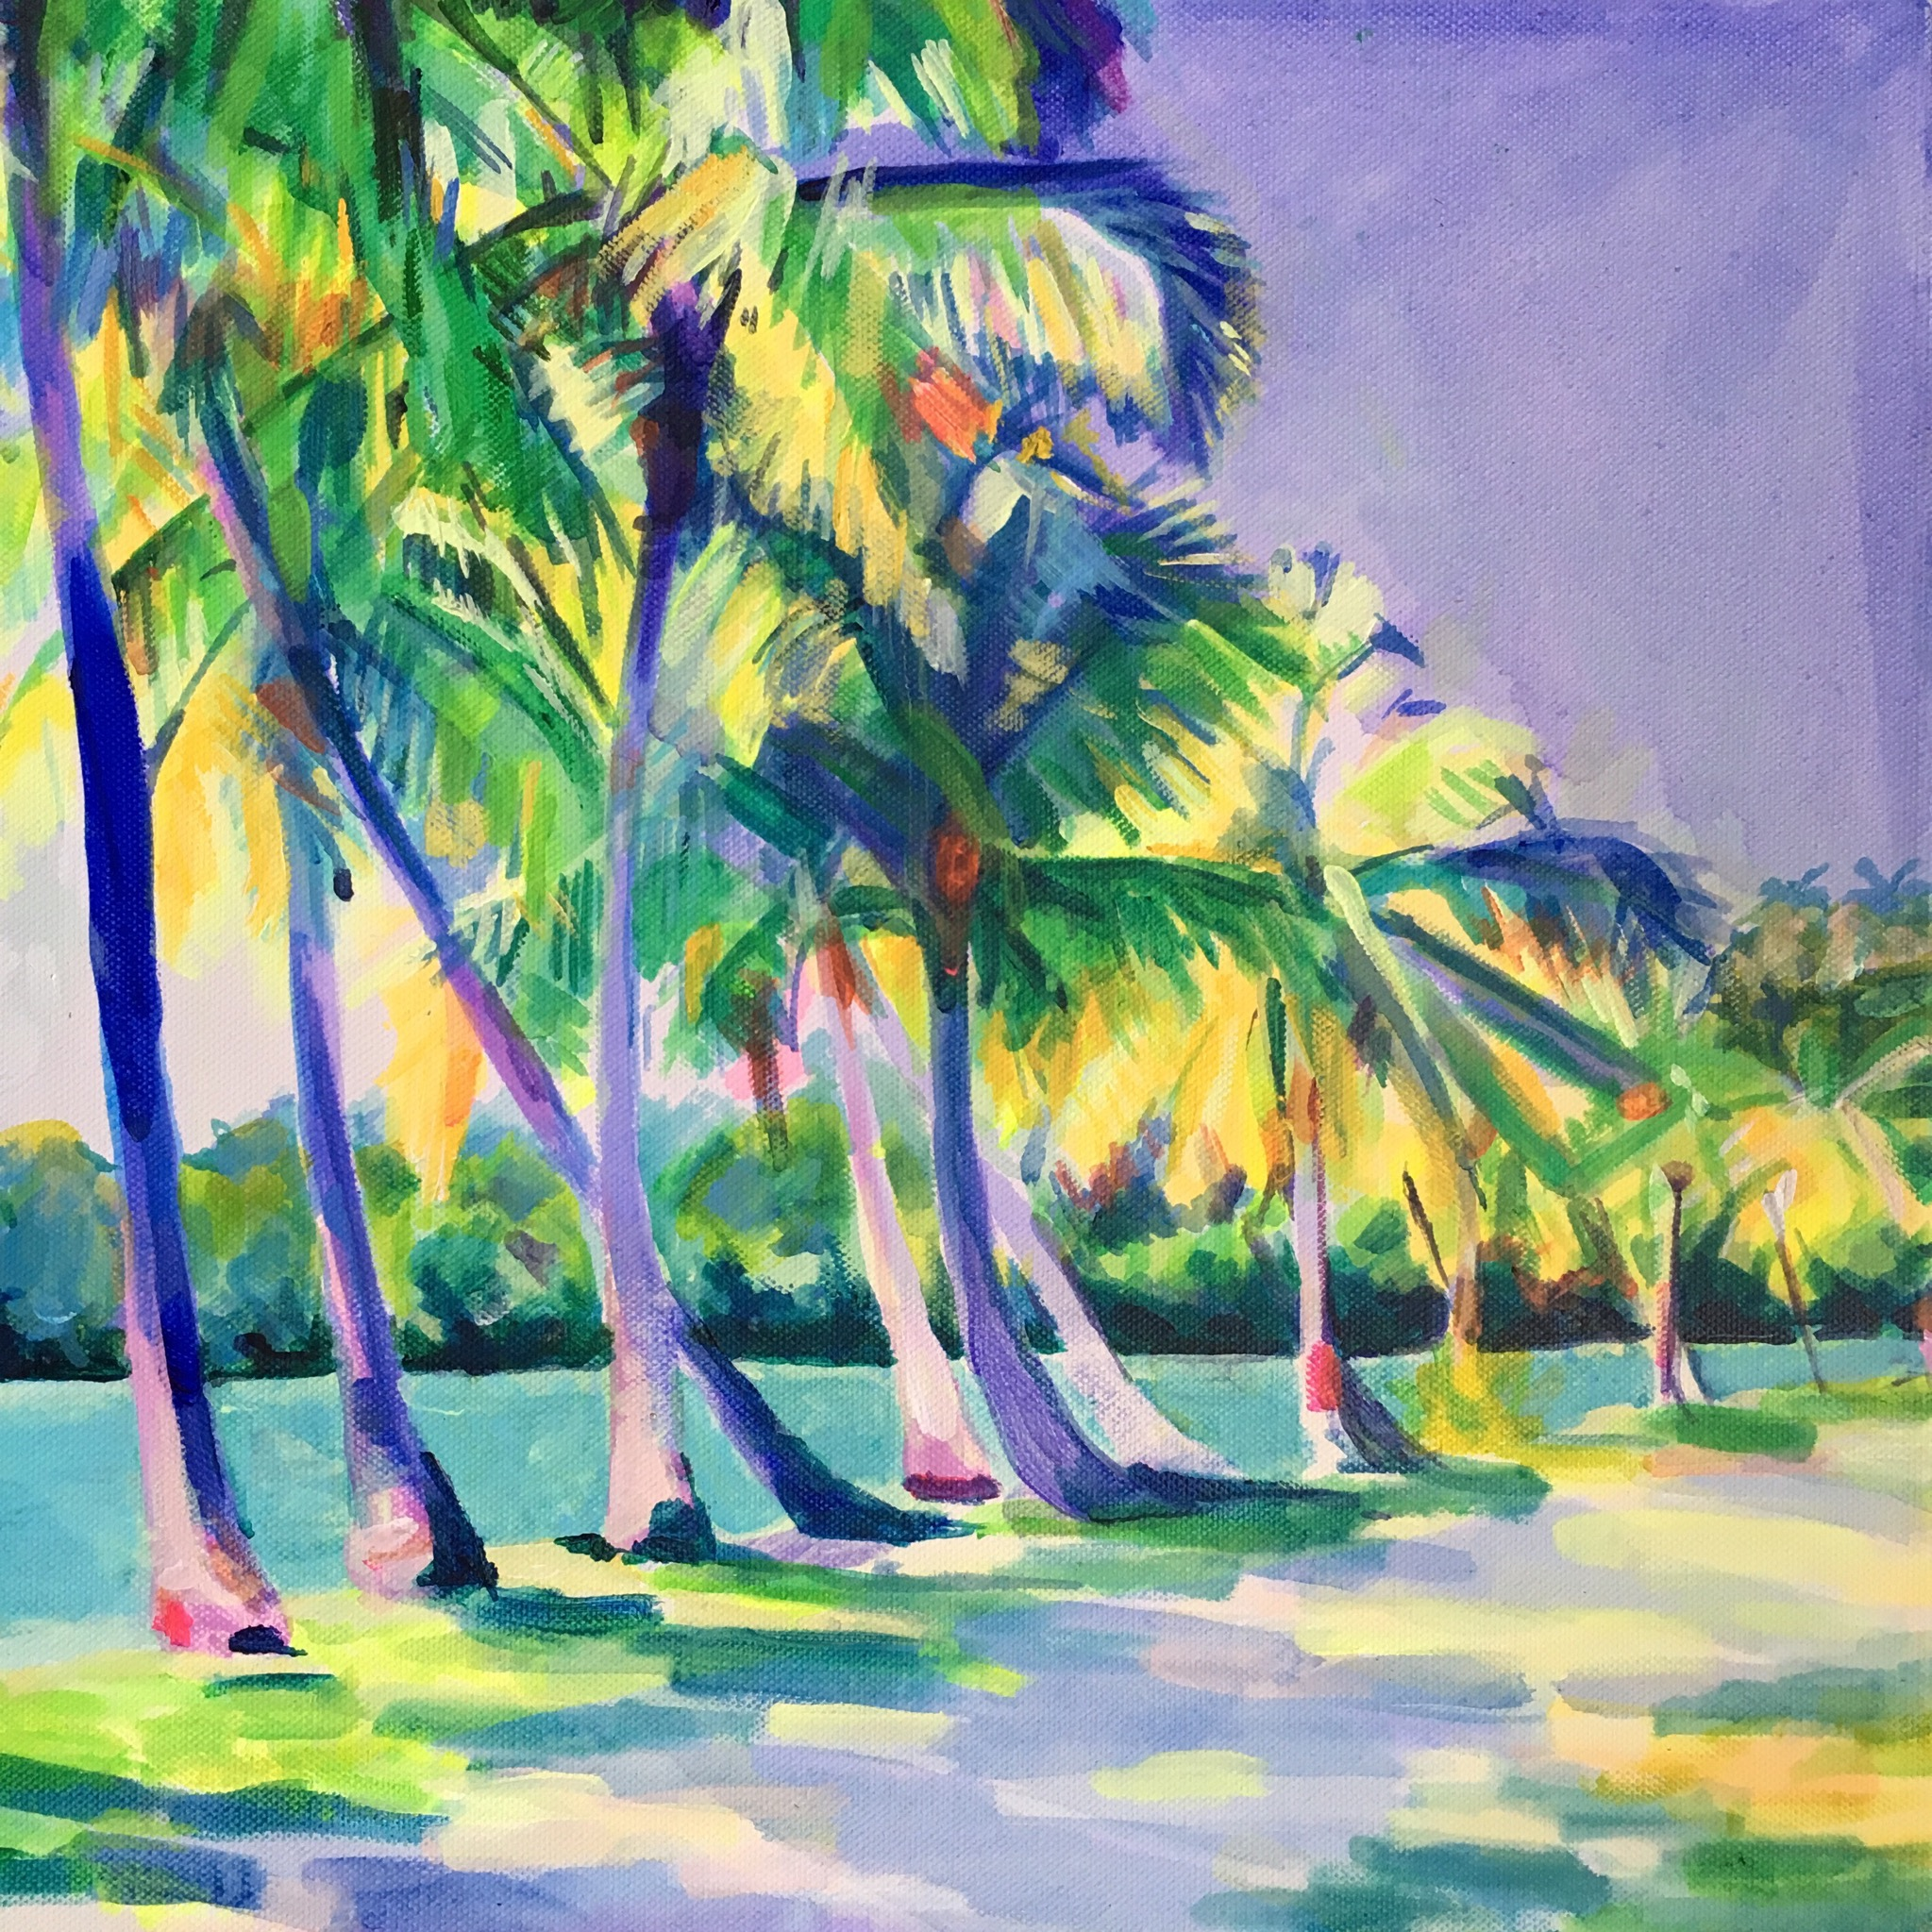 Sundappled path to the remote beach 20 x 20 inches